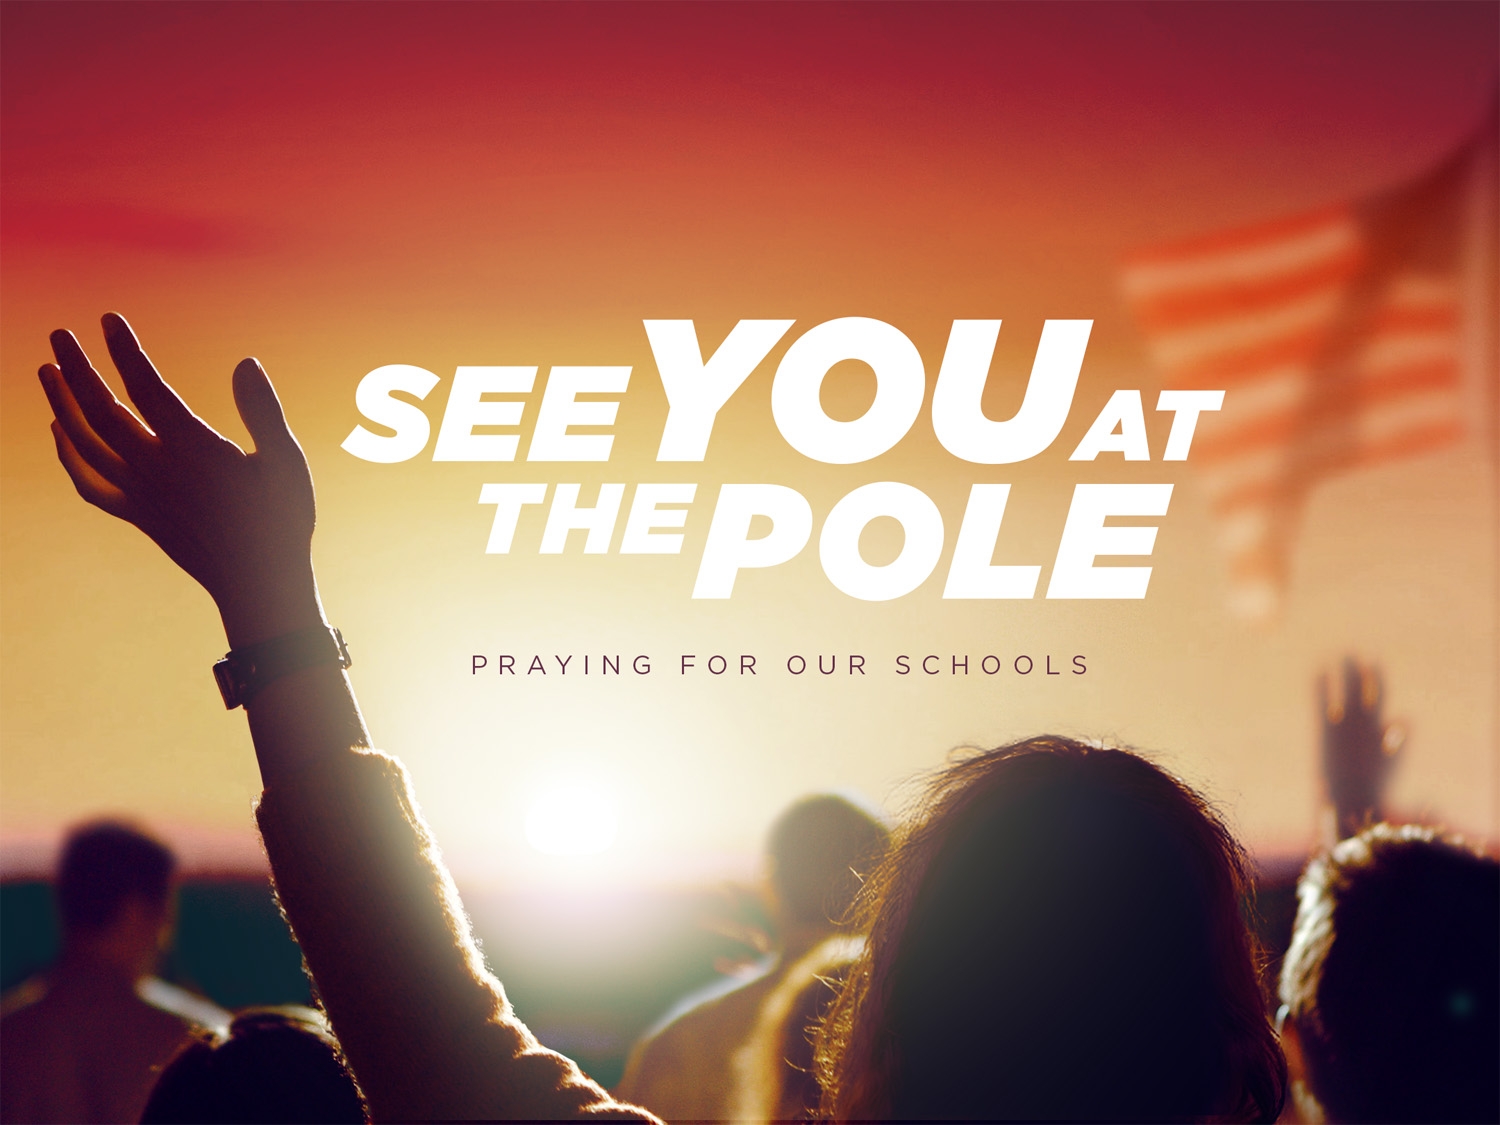 see_you_at_the_pole-title-1-Standard 4x3.jpg